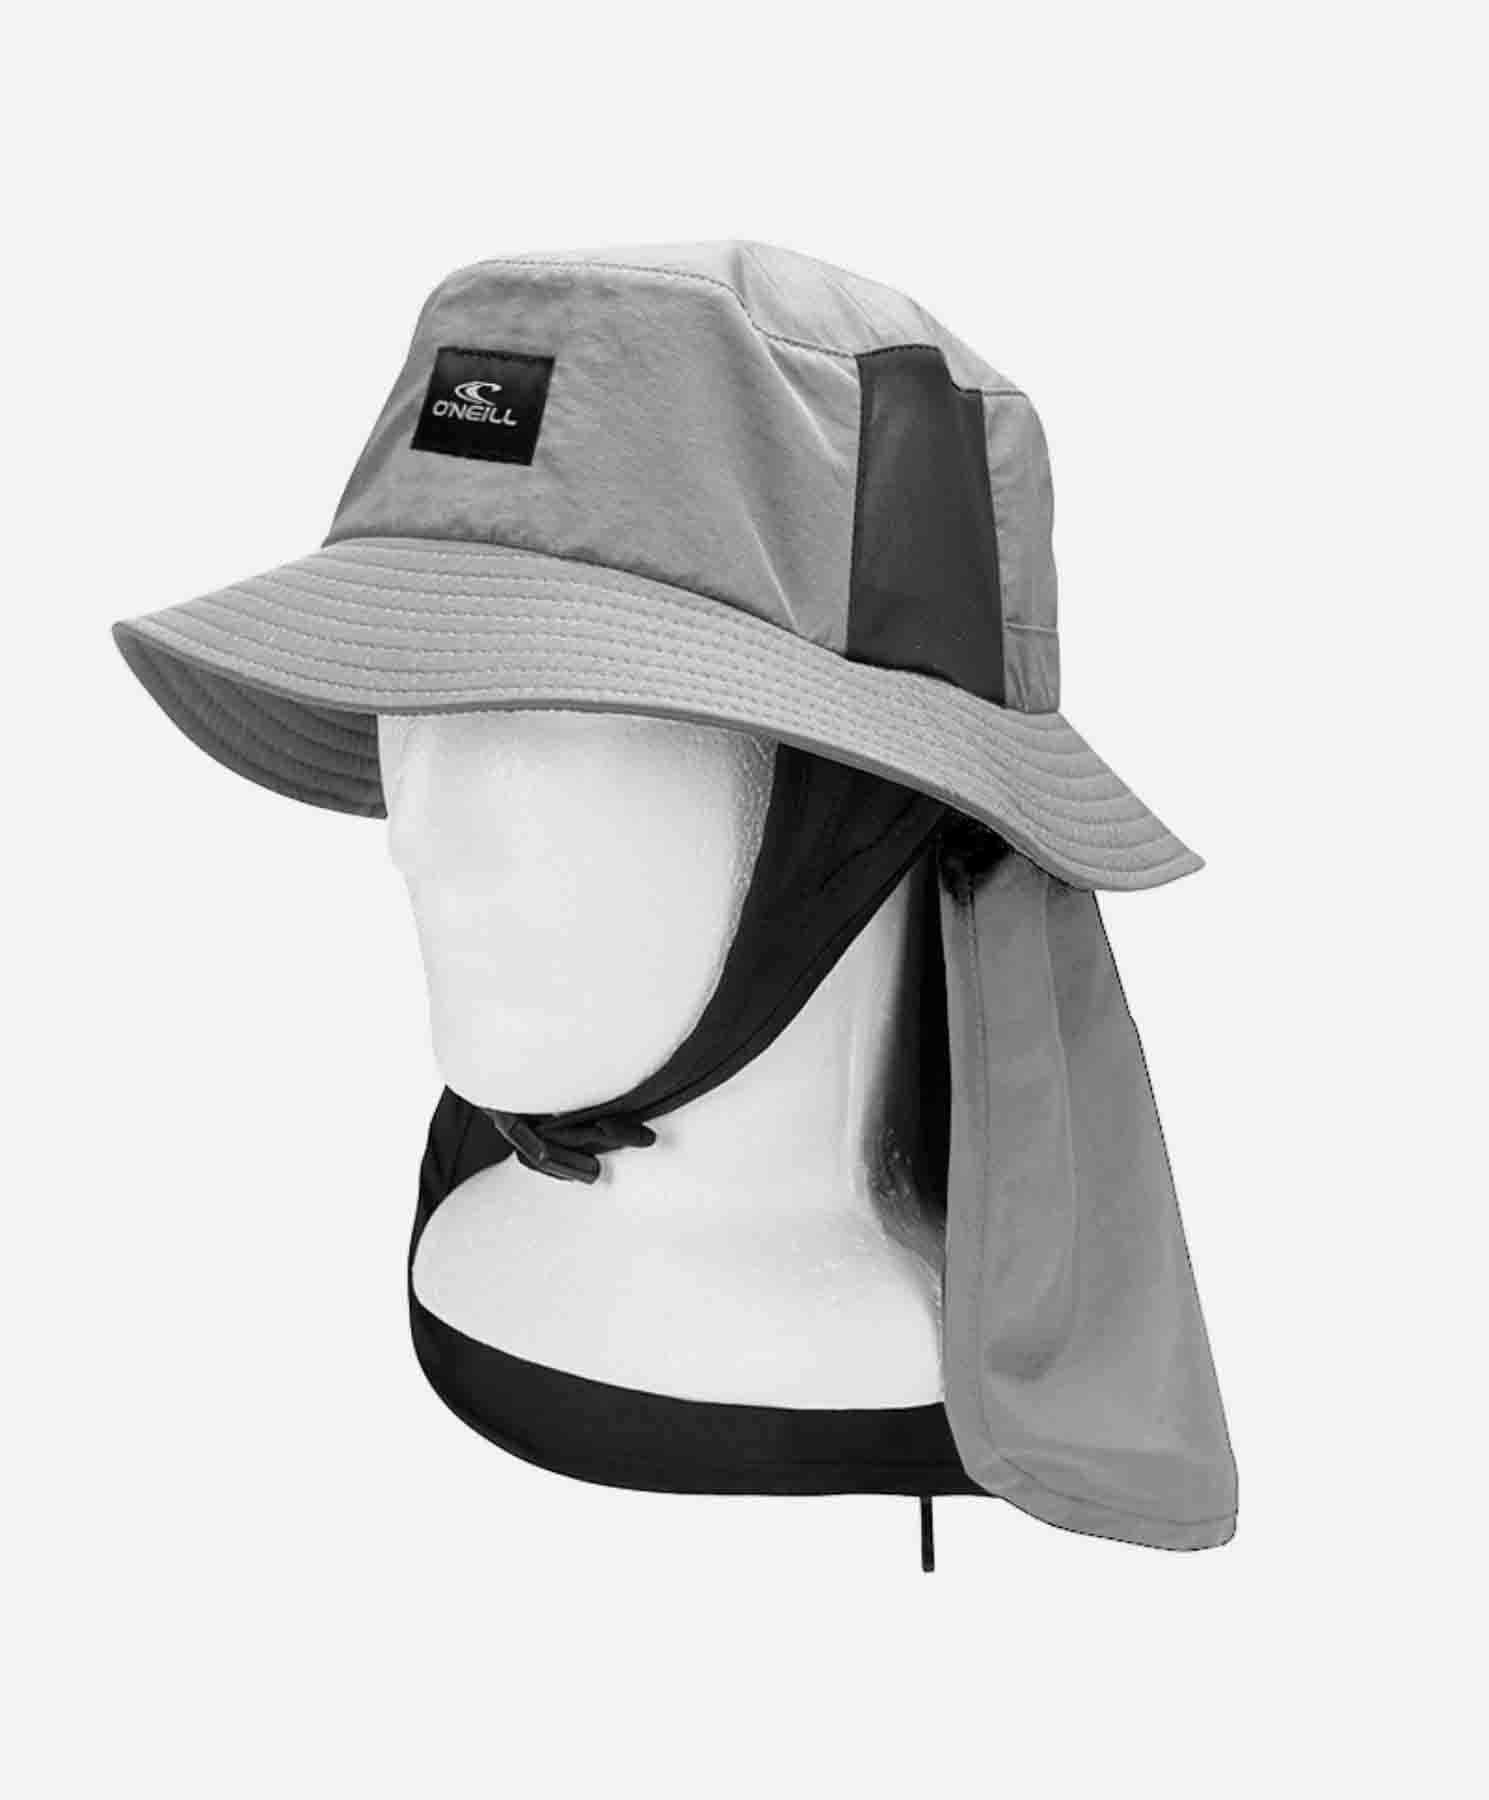 Eclipse Bucket Hat 3.0